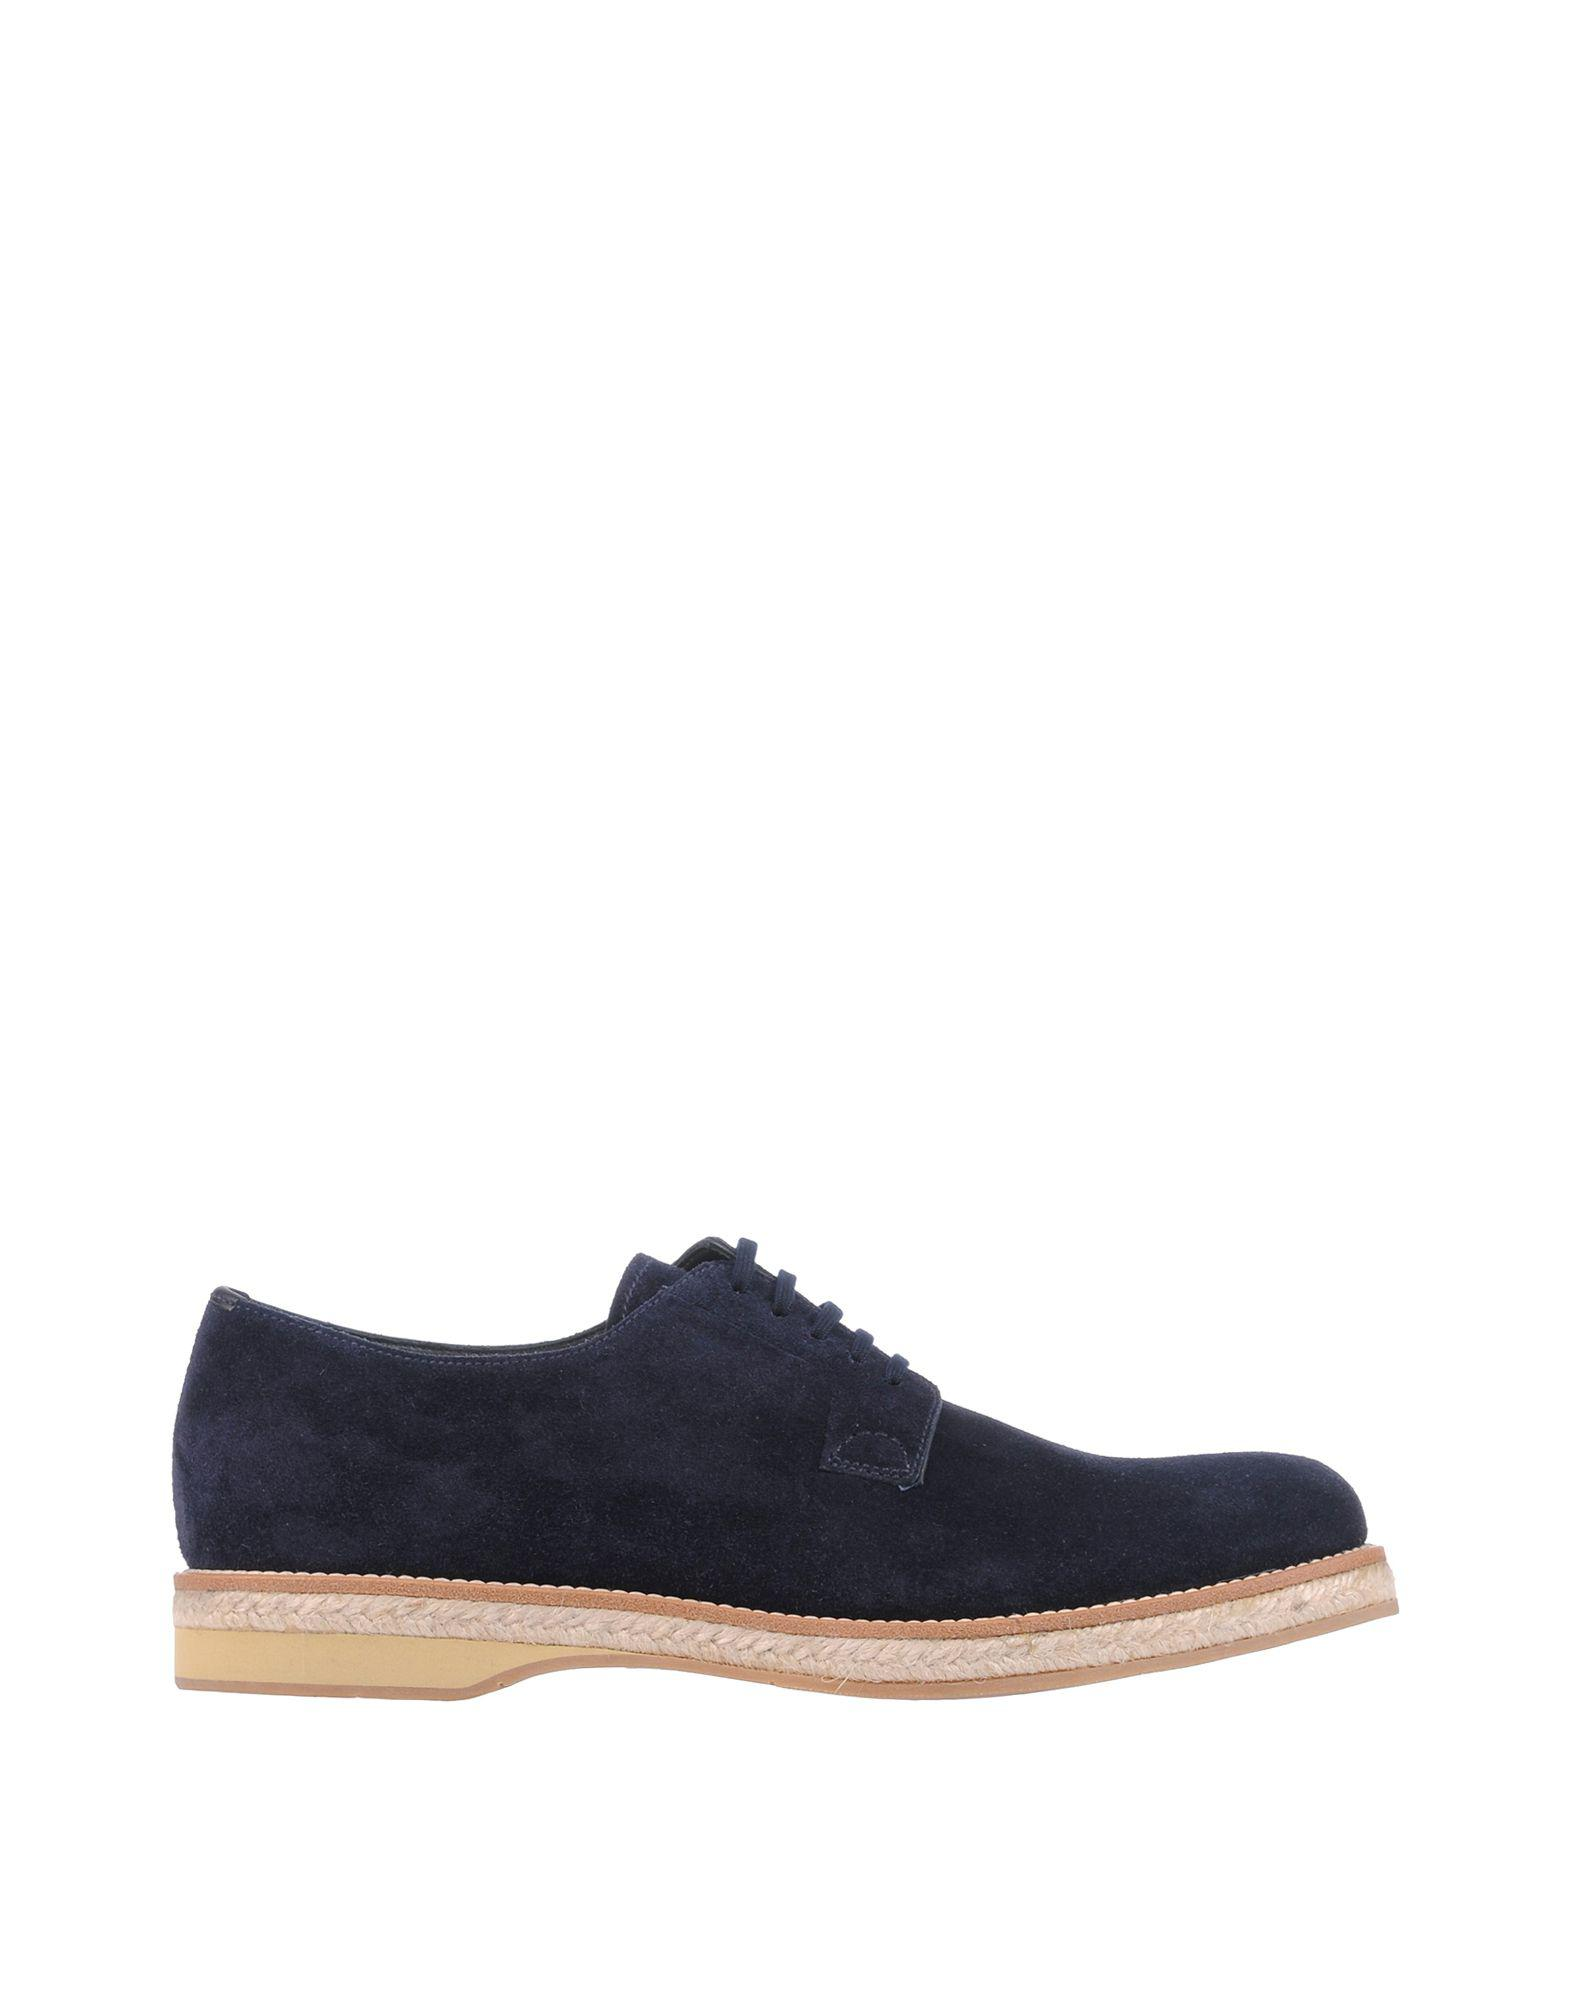 c943bc5a87f Lyst - Prada Lace-up Shoe in Blue for Men